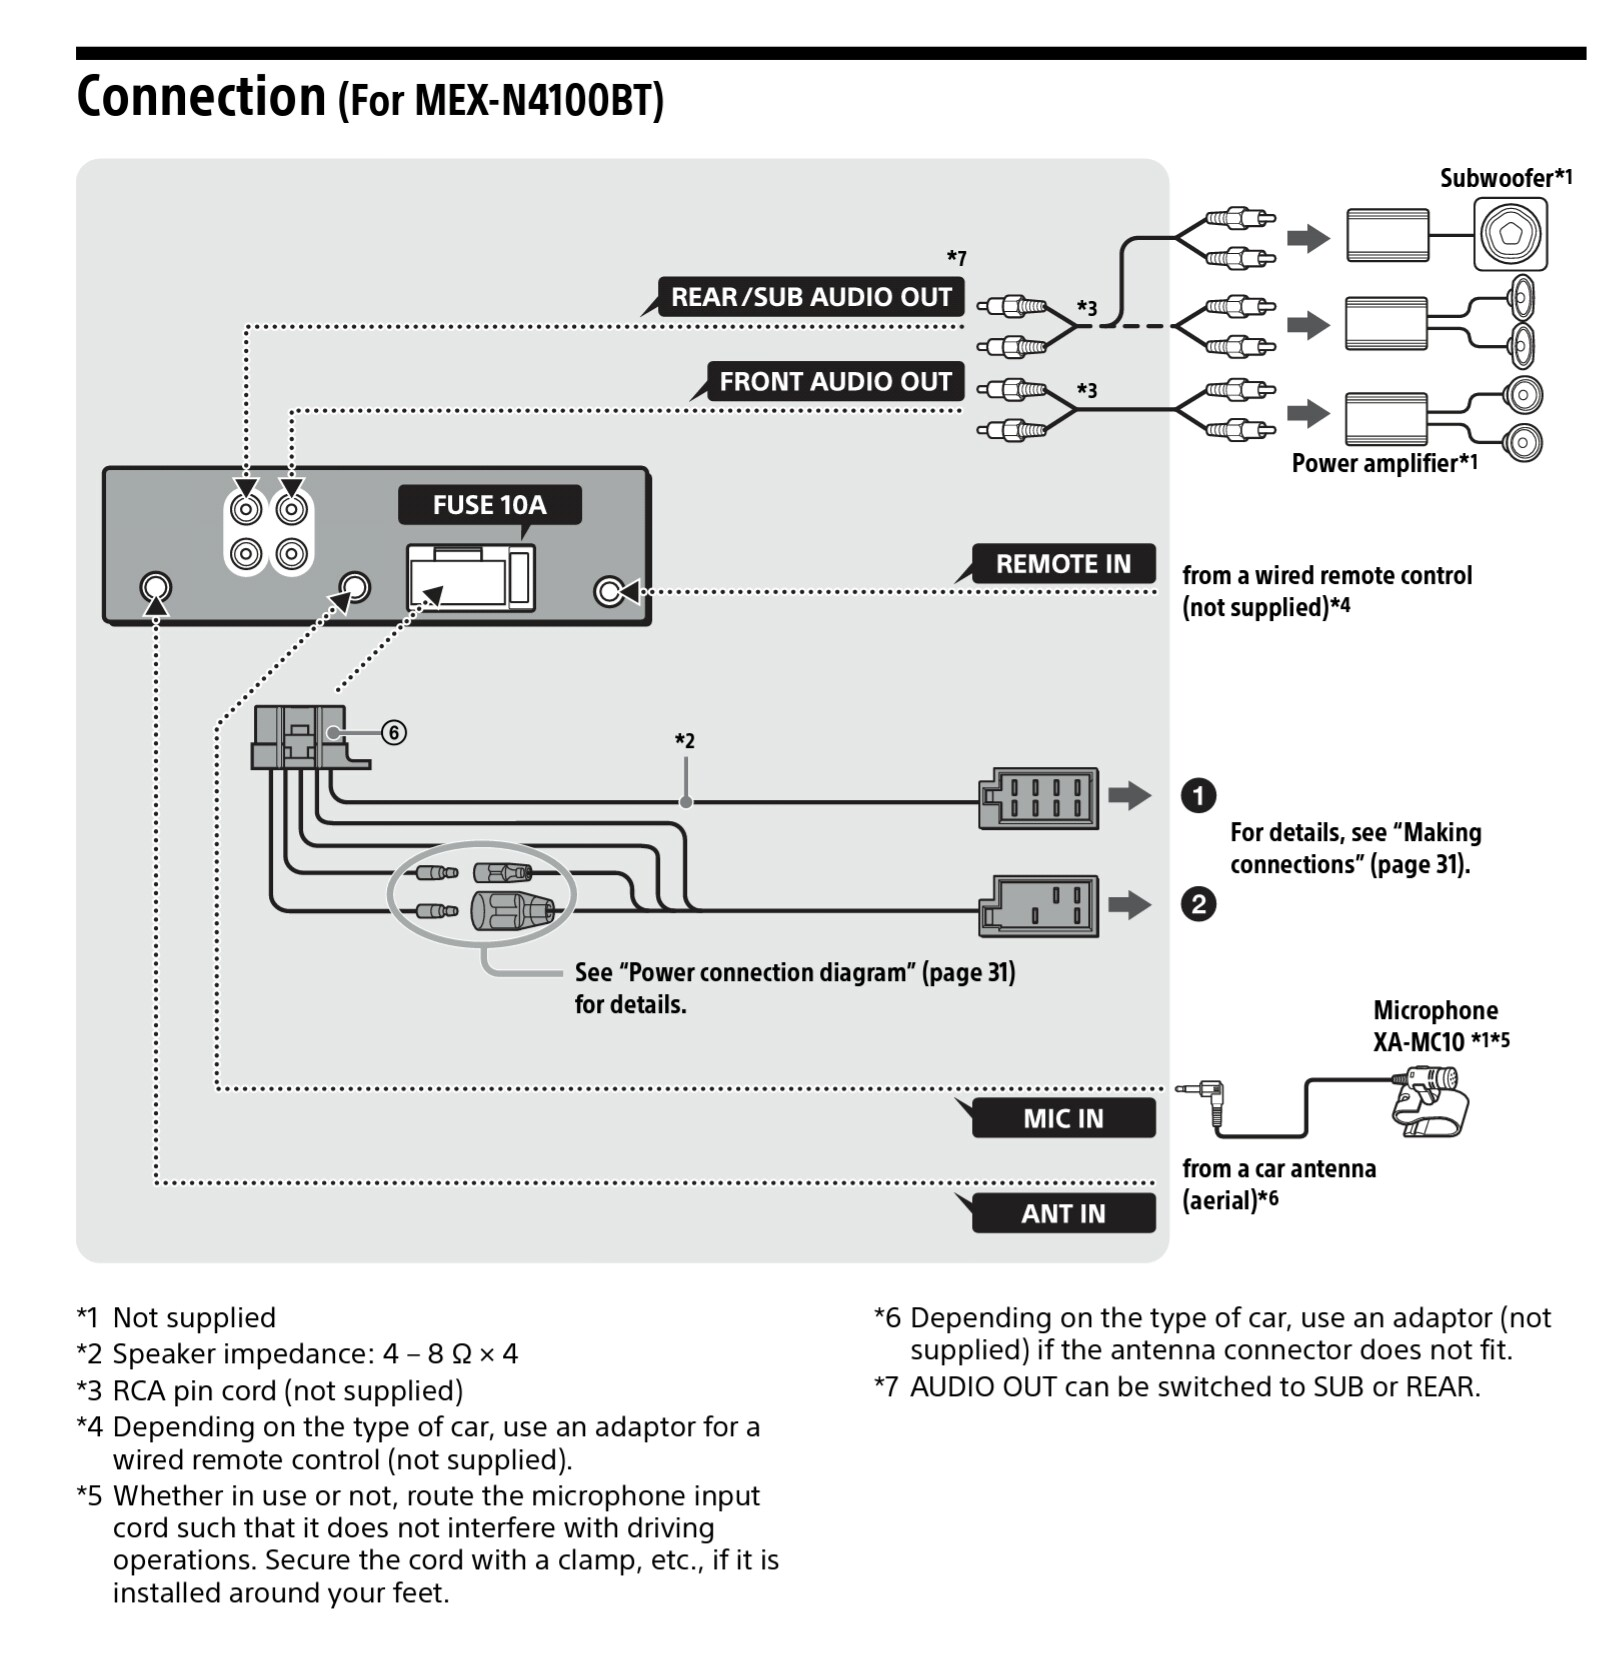 Sony Remote Control Diagram Wiring Home Infrared Launch Circuit Remotecontrolcircuit Wired Lead For Mex N4100bt Tv